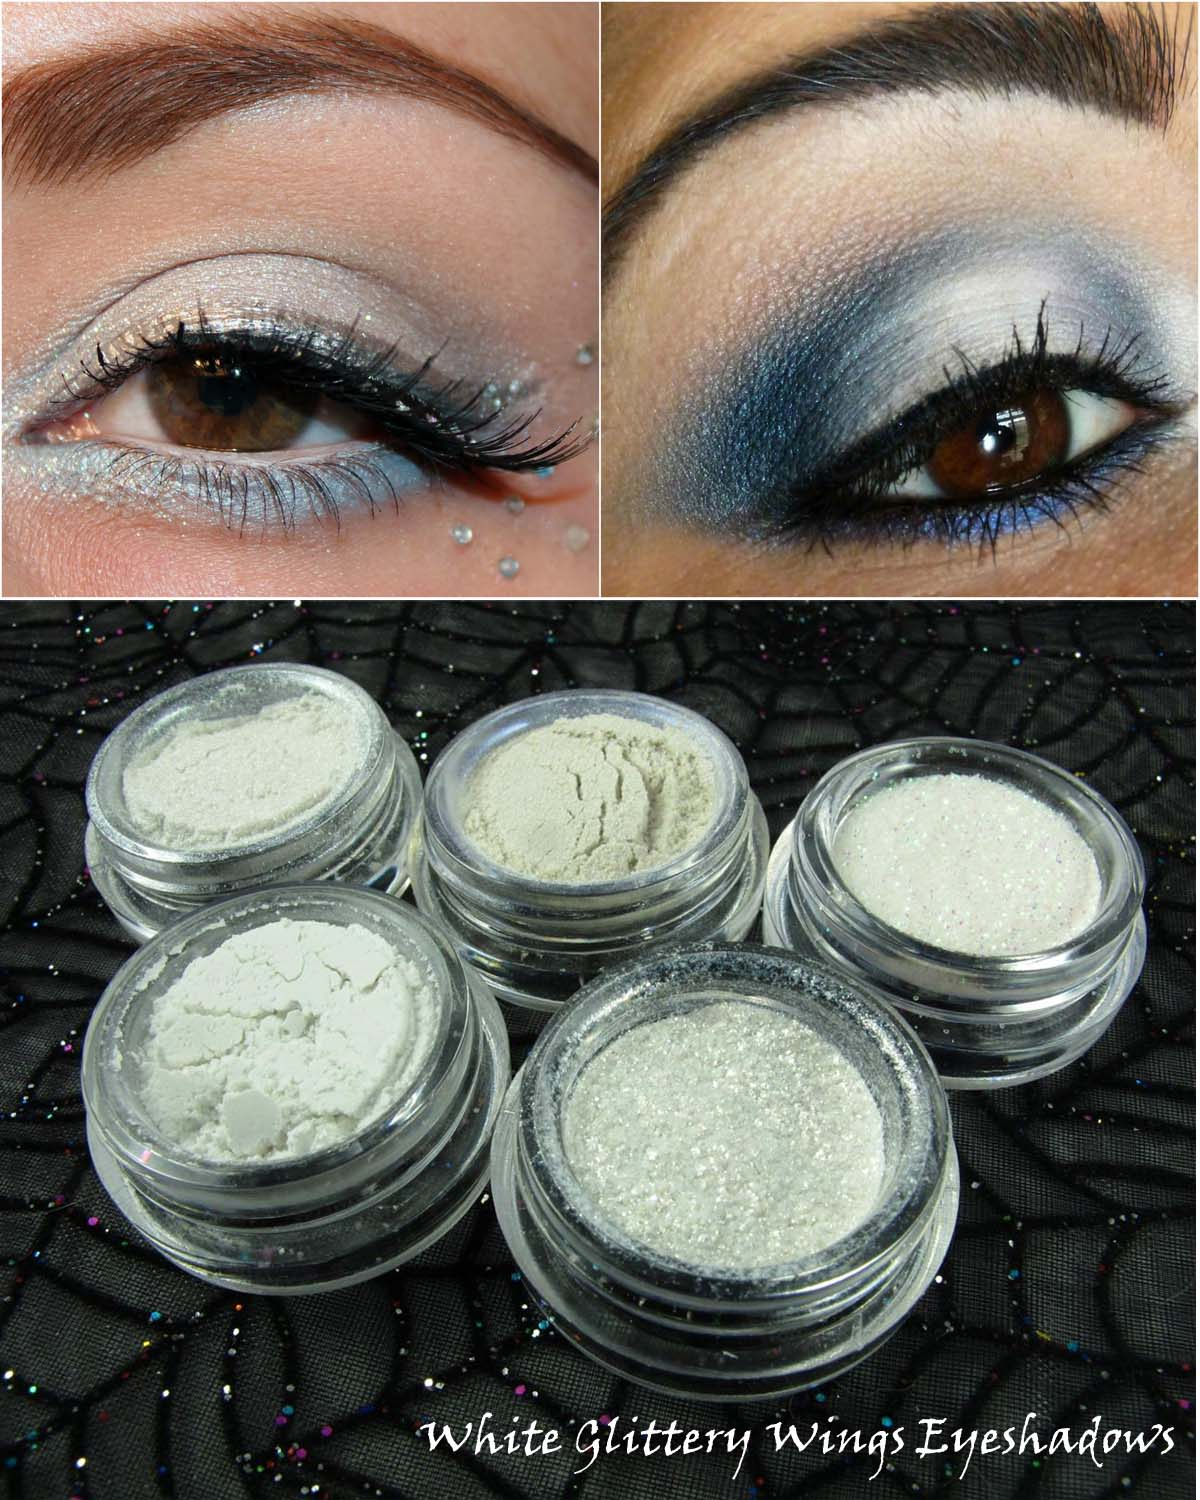 White-Glittery-Wings-Eyeshadows